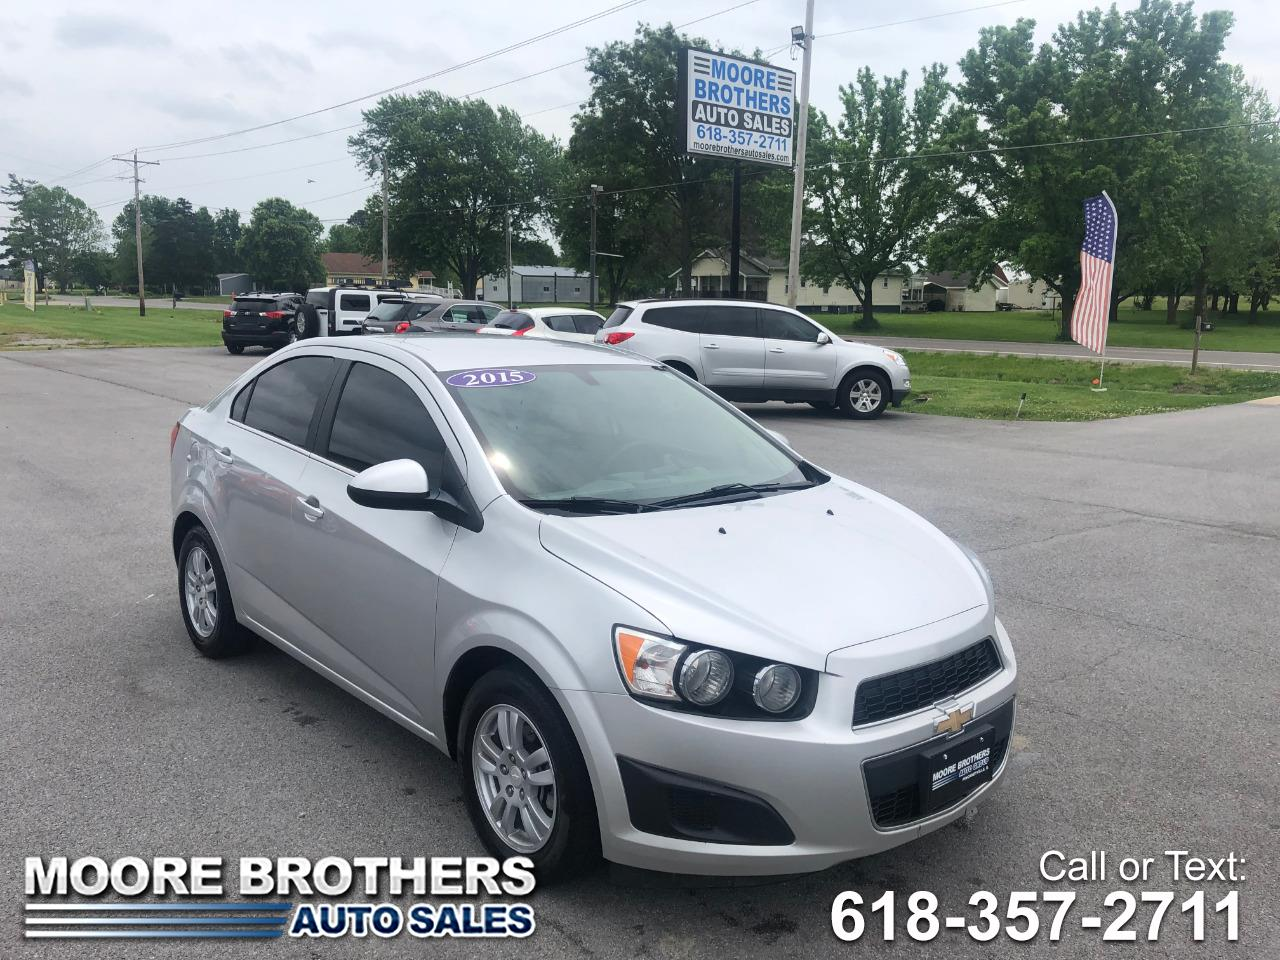 2015 Chevrolet Sonic 4dr Sdn Auto LT